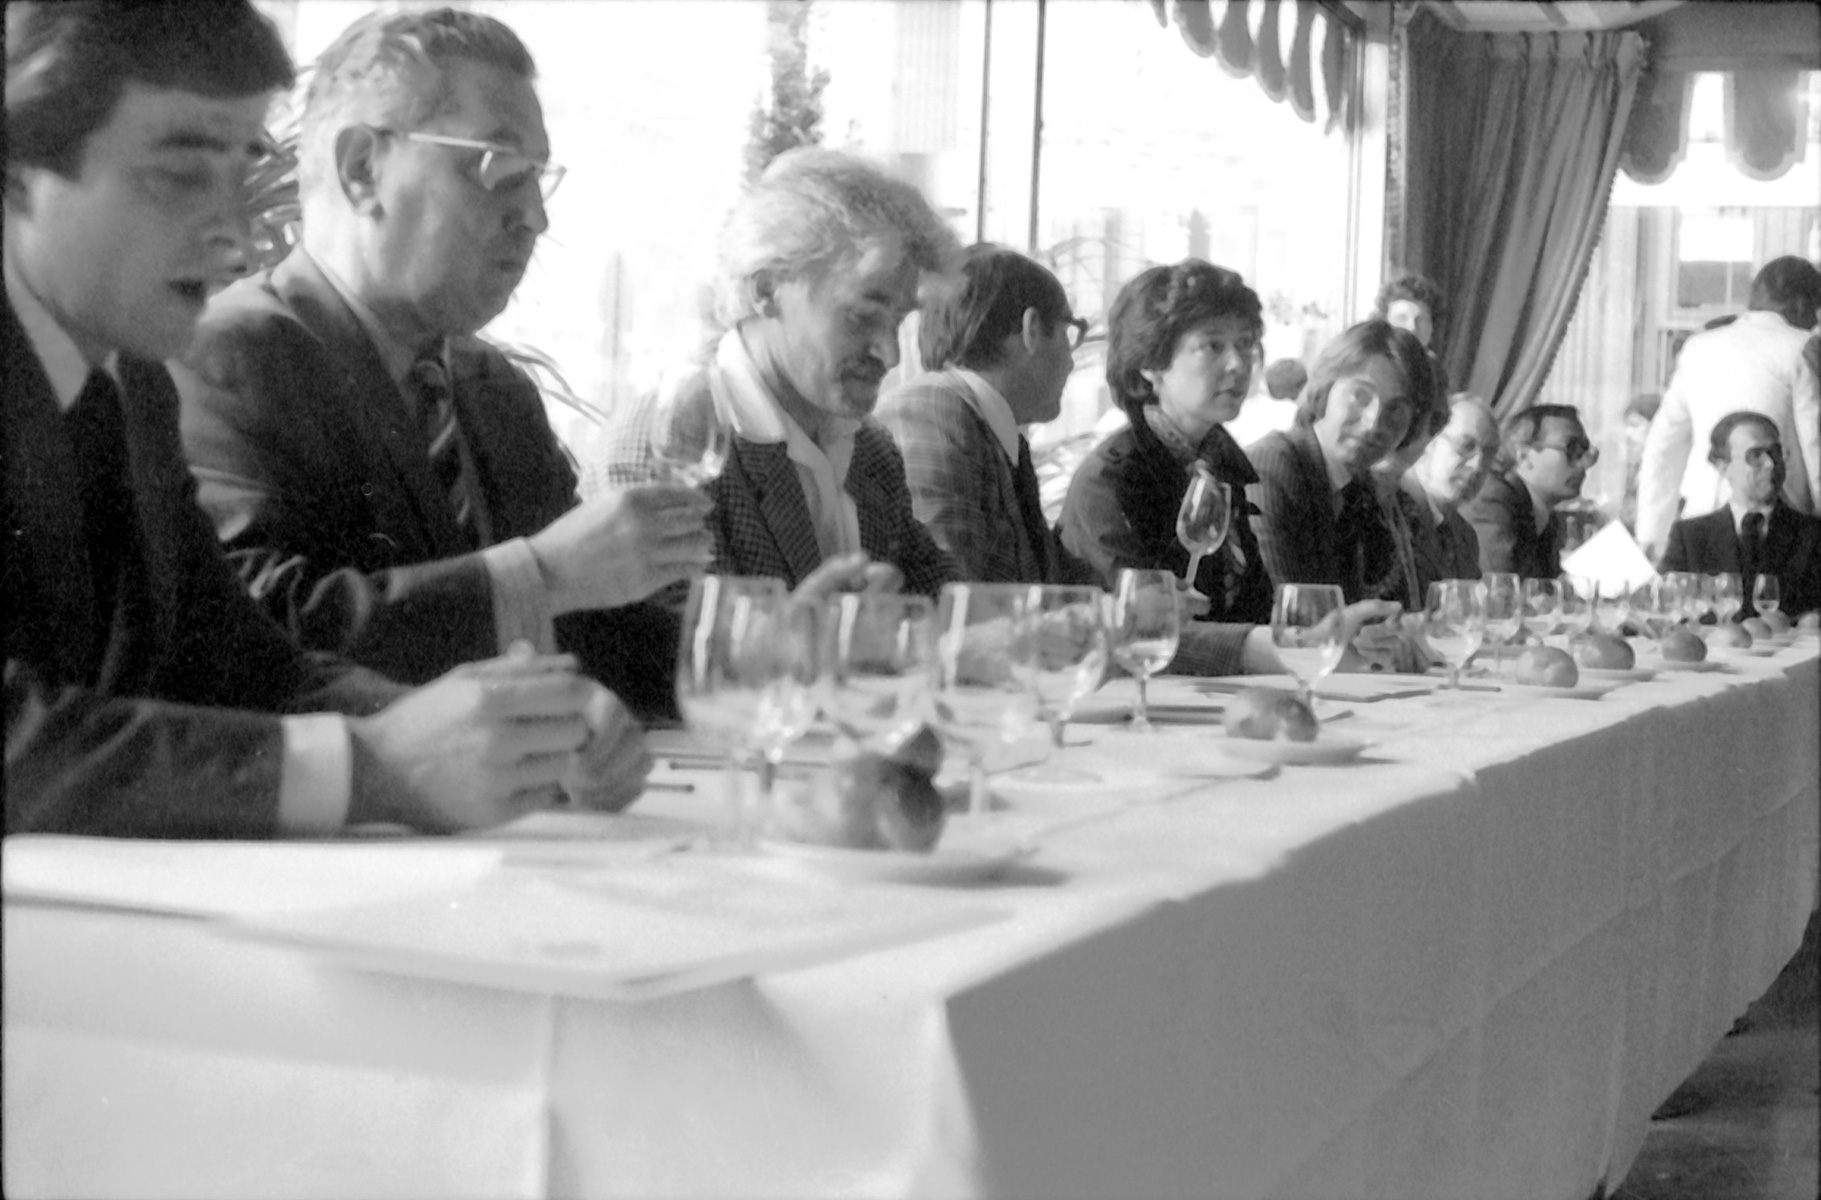 40 years later, Smithsonian celebrates pivotal moment in wine history